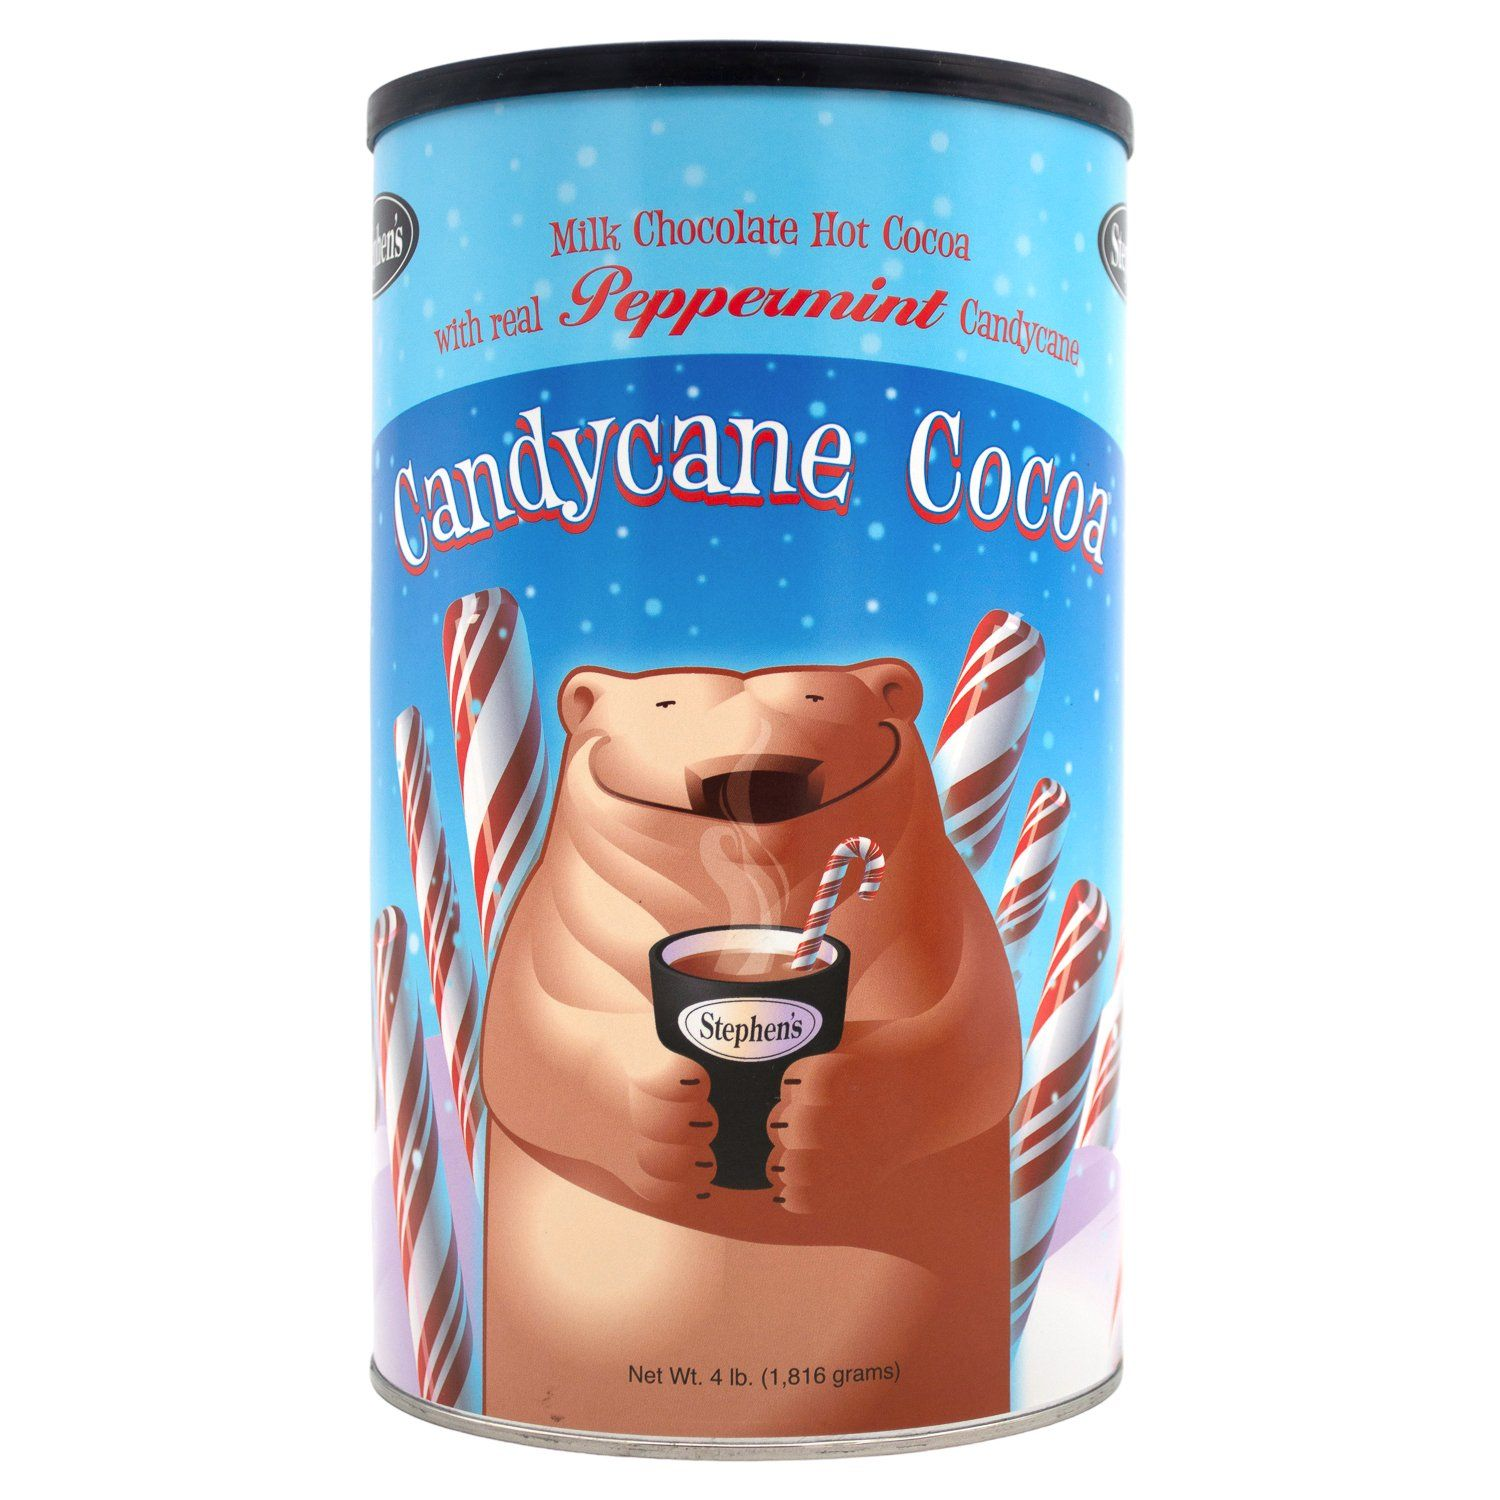 Stephen's Hot Cocoa Stephen's Milk Chocolate Candycane 4 Pound